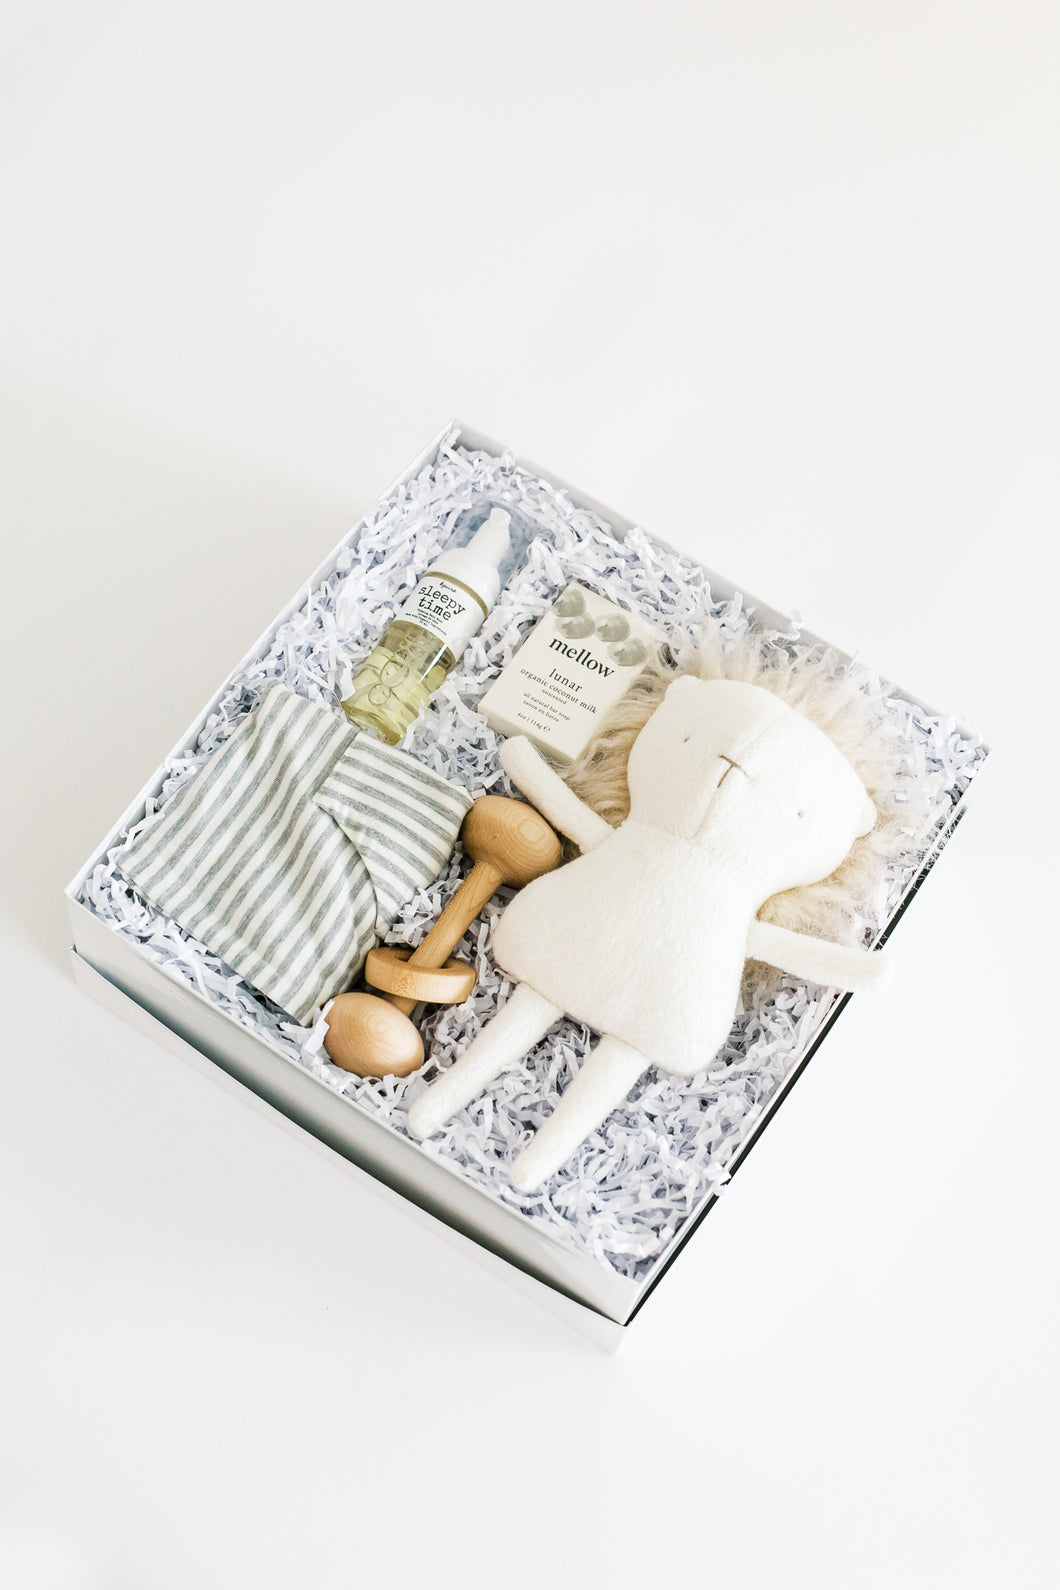 Top view photo of Bebé gift box on a white background, including foam wash, unscented soap, wooden rattle toy, grey and ivory striped romper, and stuffed lion toy.